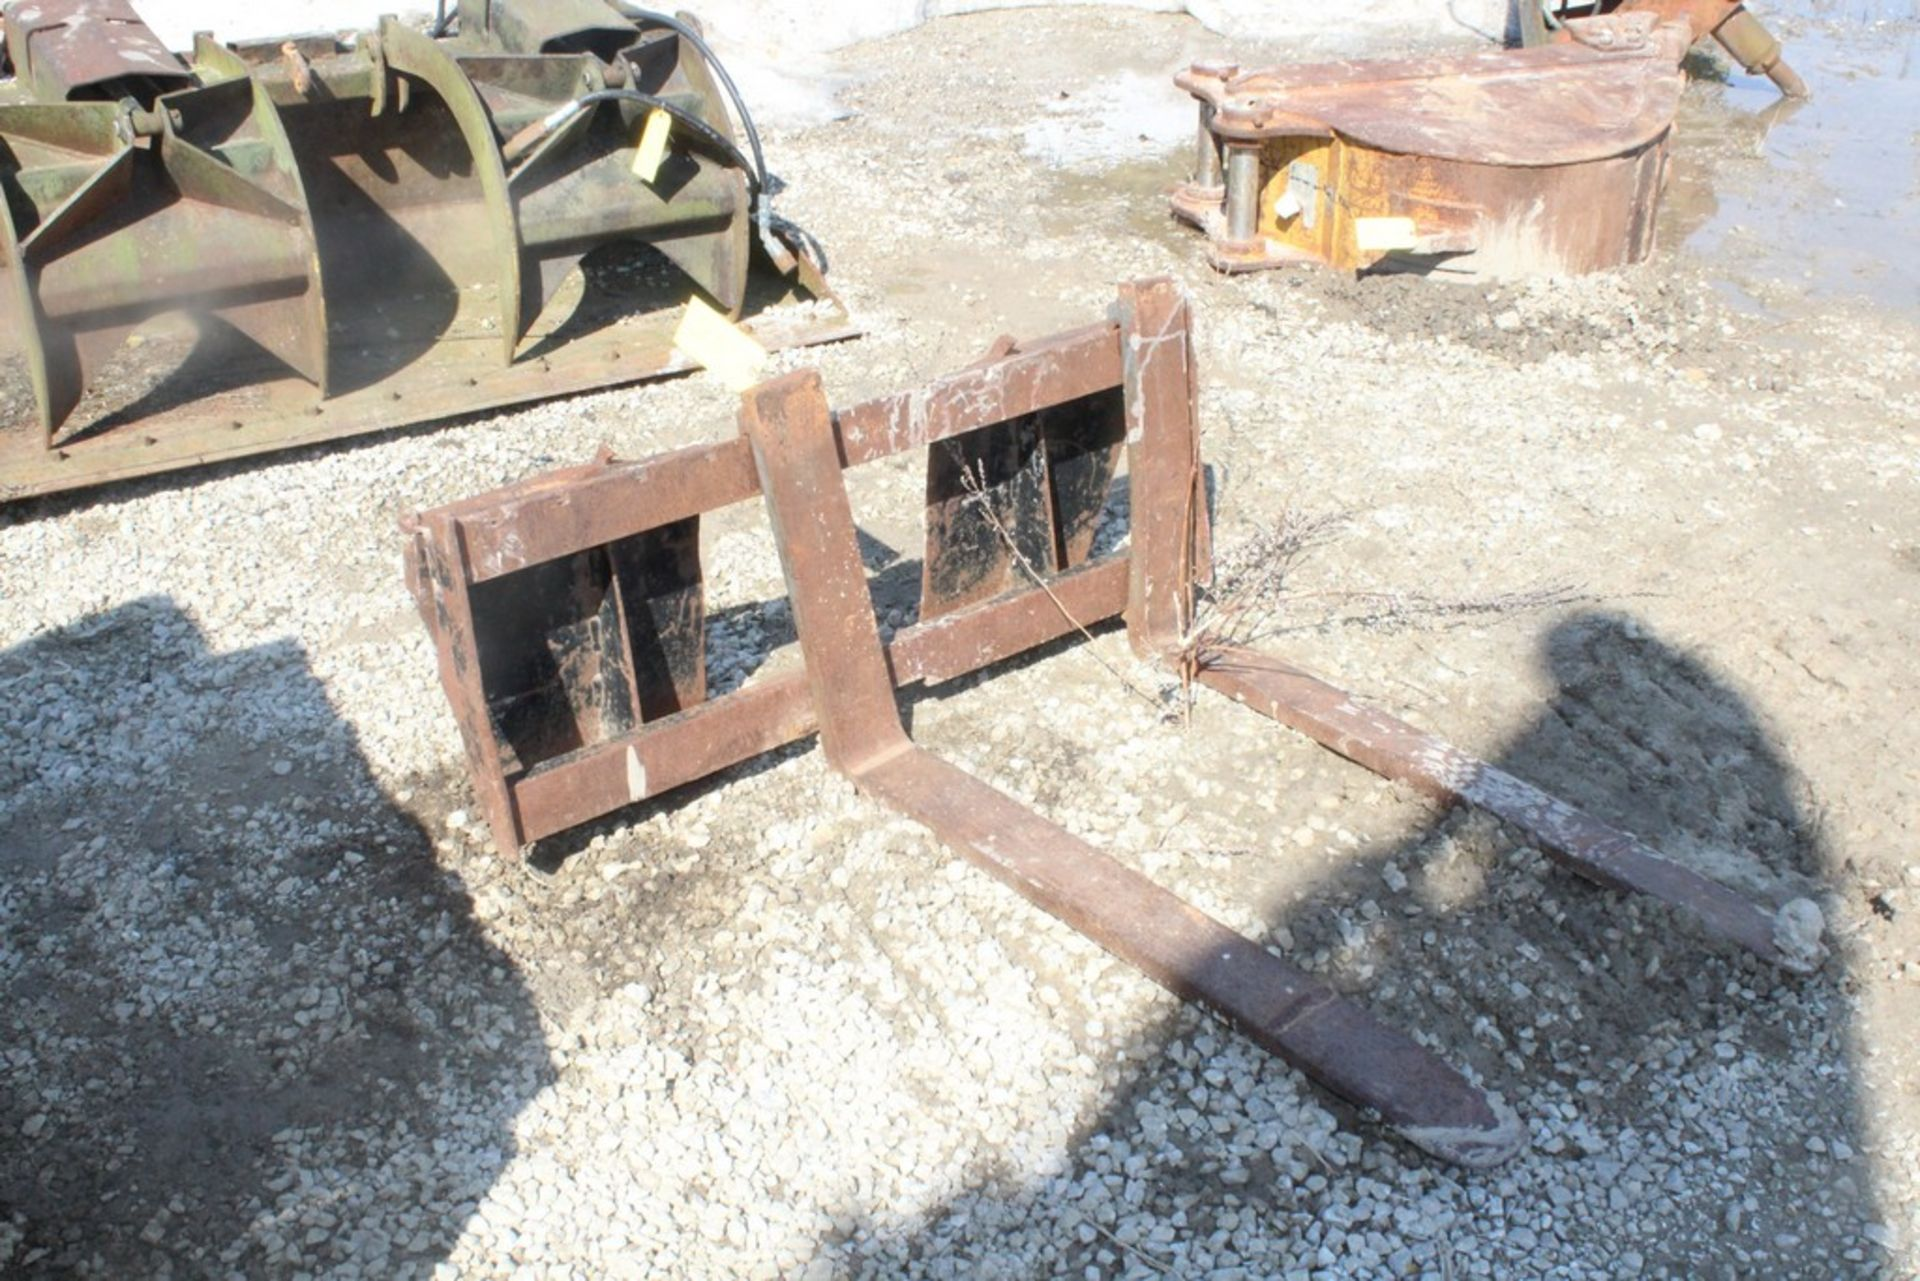 42-IN. FORK ATTACHMENT, 42-IN. FORKS, (1) BALL HITCH ON (1) FORK, TO IT SKID STEER LOADER